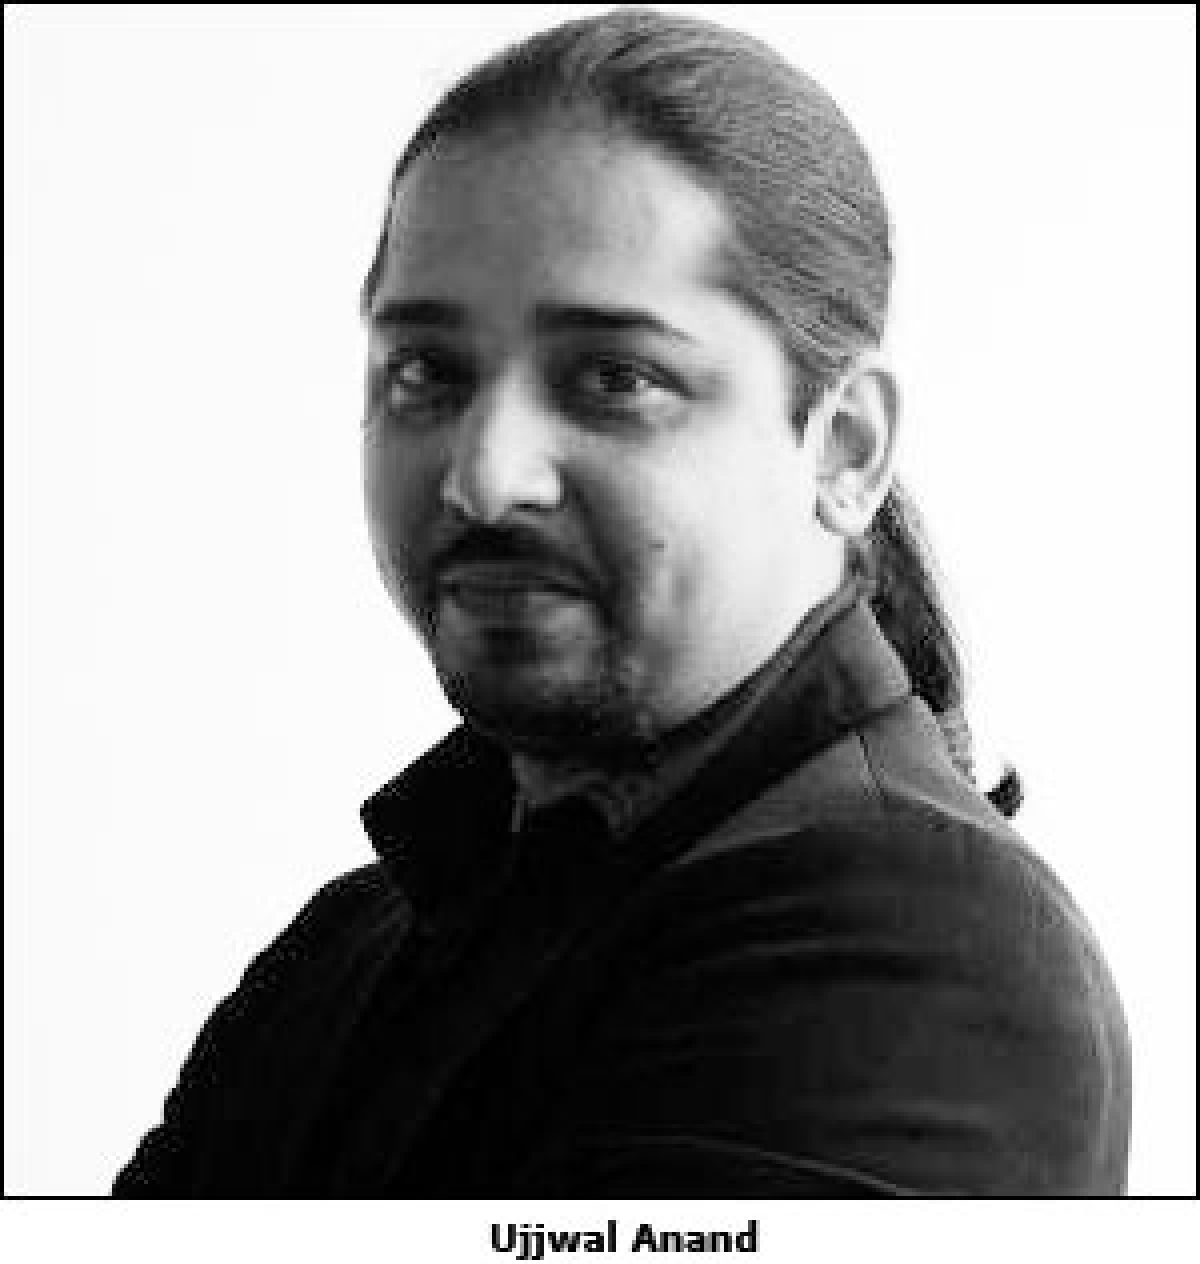 Ogilvy's Ujjwal Anand to head Milestone Brandcom's rural and experiential division